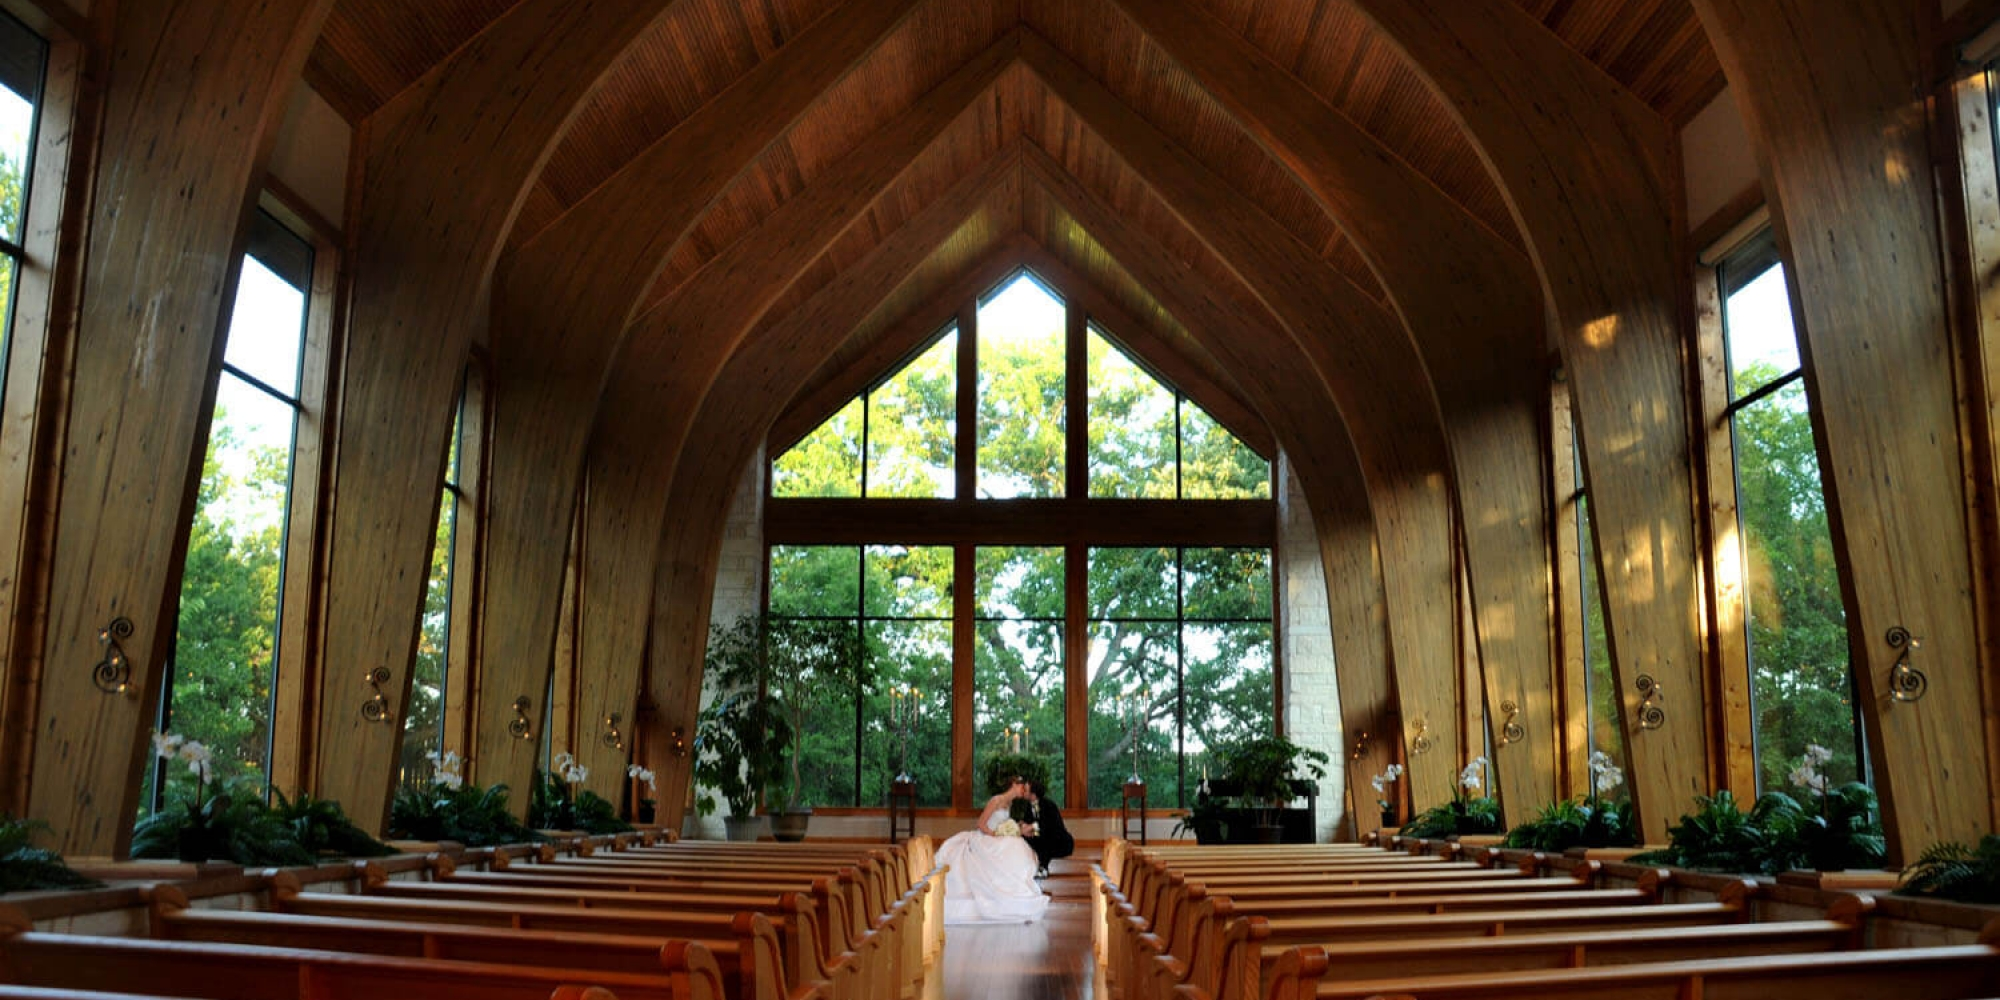 The perfect chapel to get married! #thunderbirdchapel #normanoklahoma #wedding